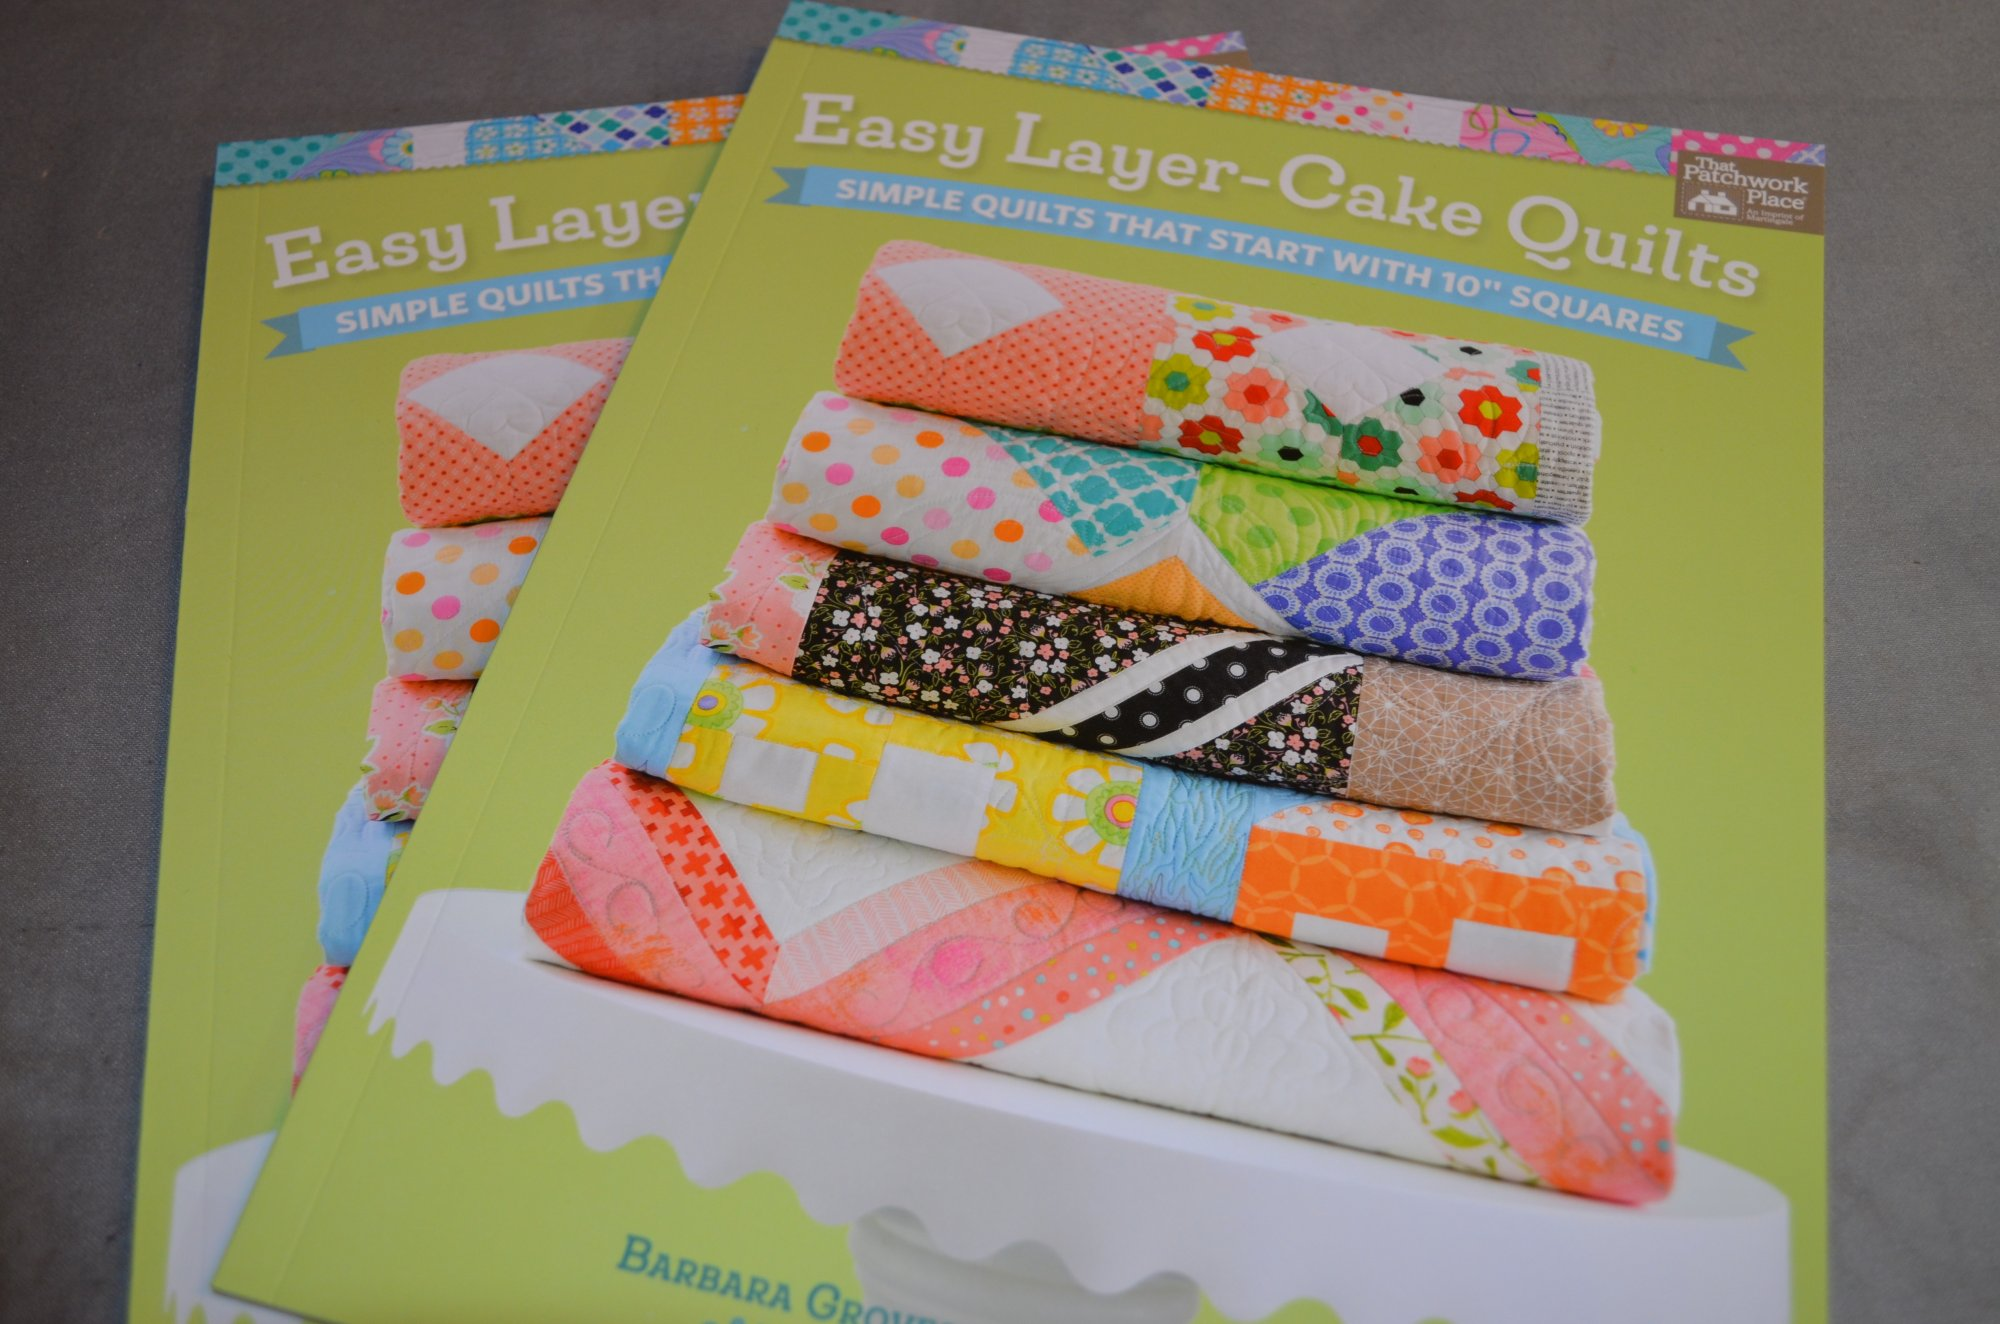 Easy Layer-Cake Quilts Book By Patchwork Place TPPB1418